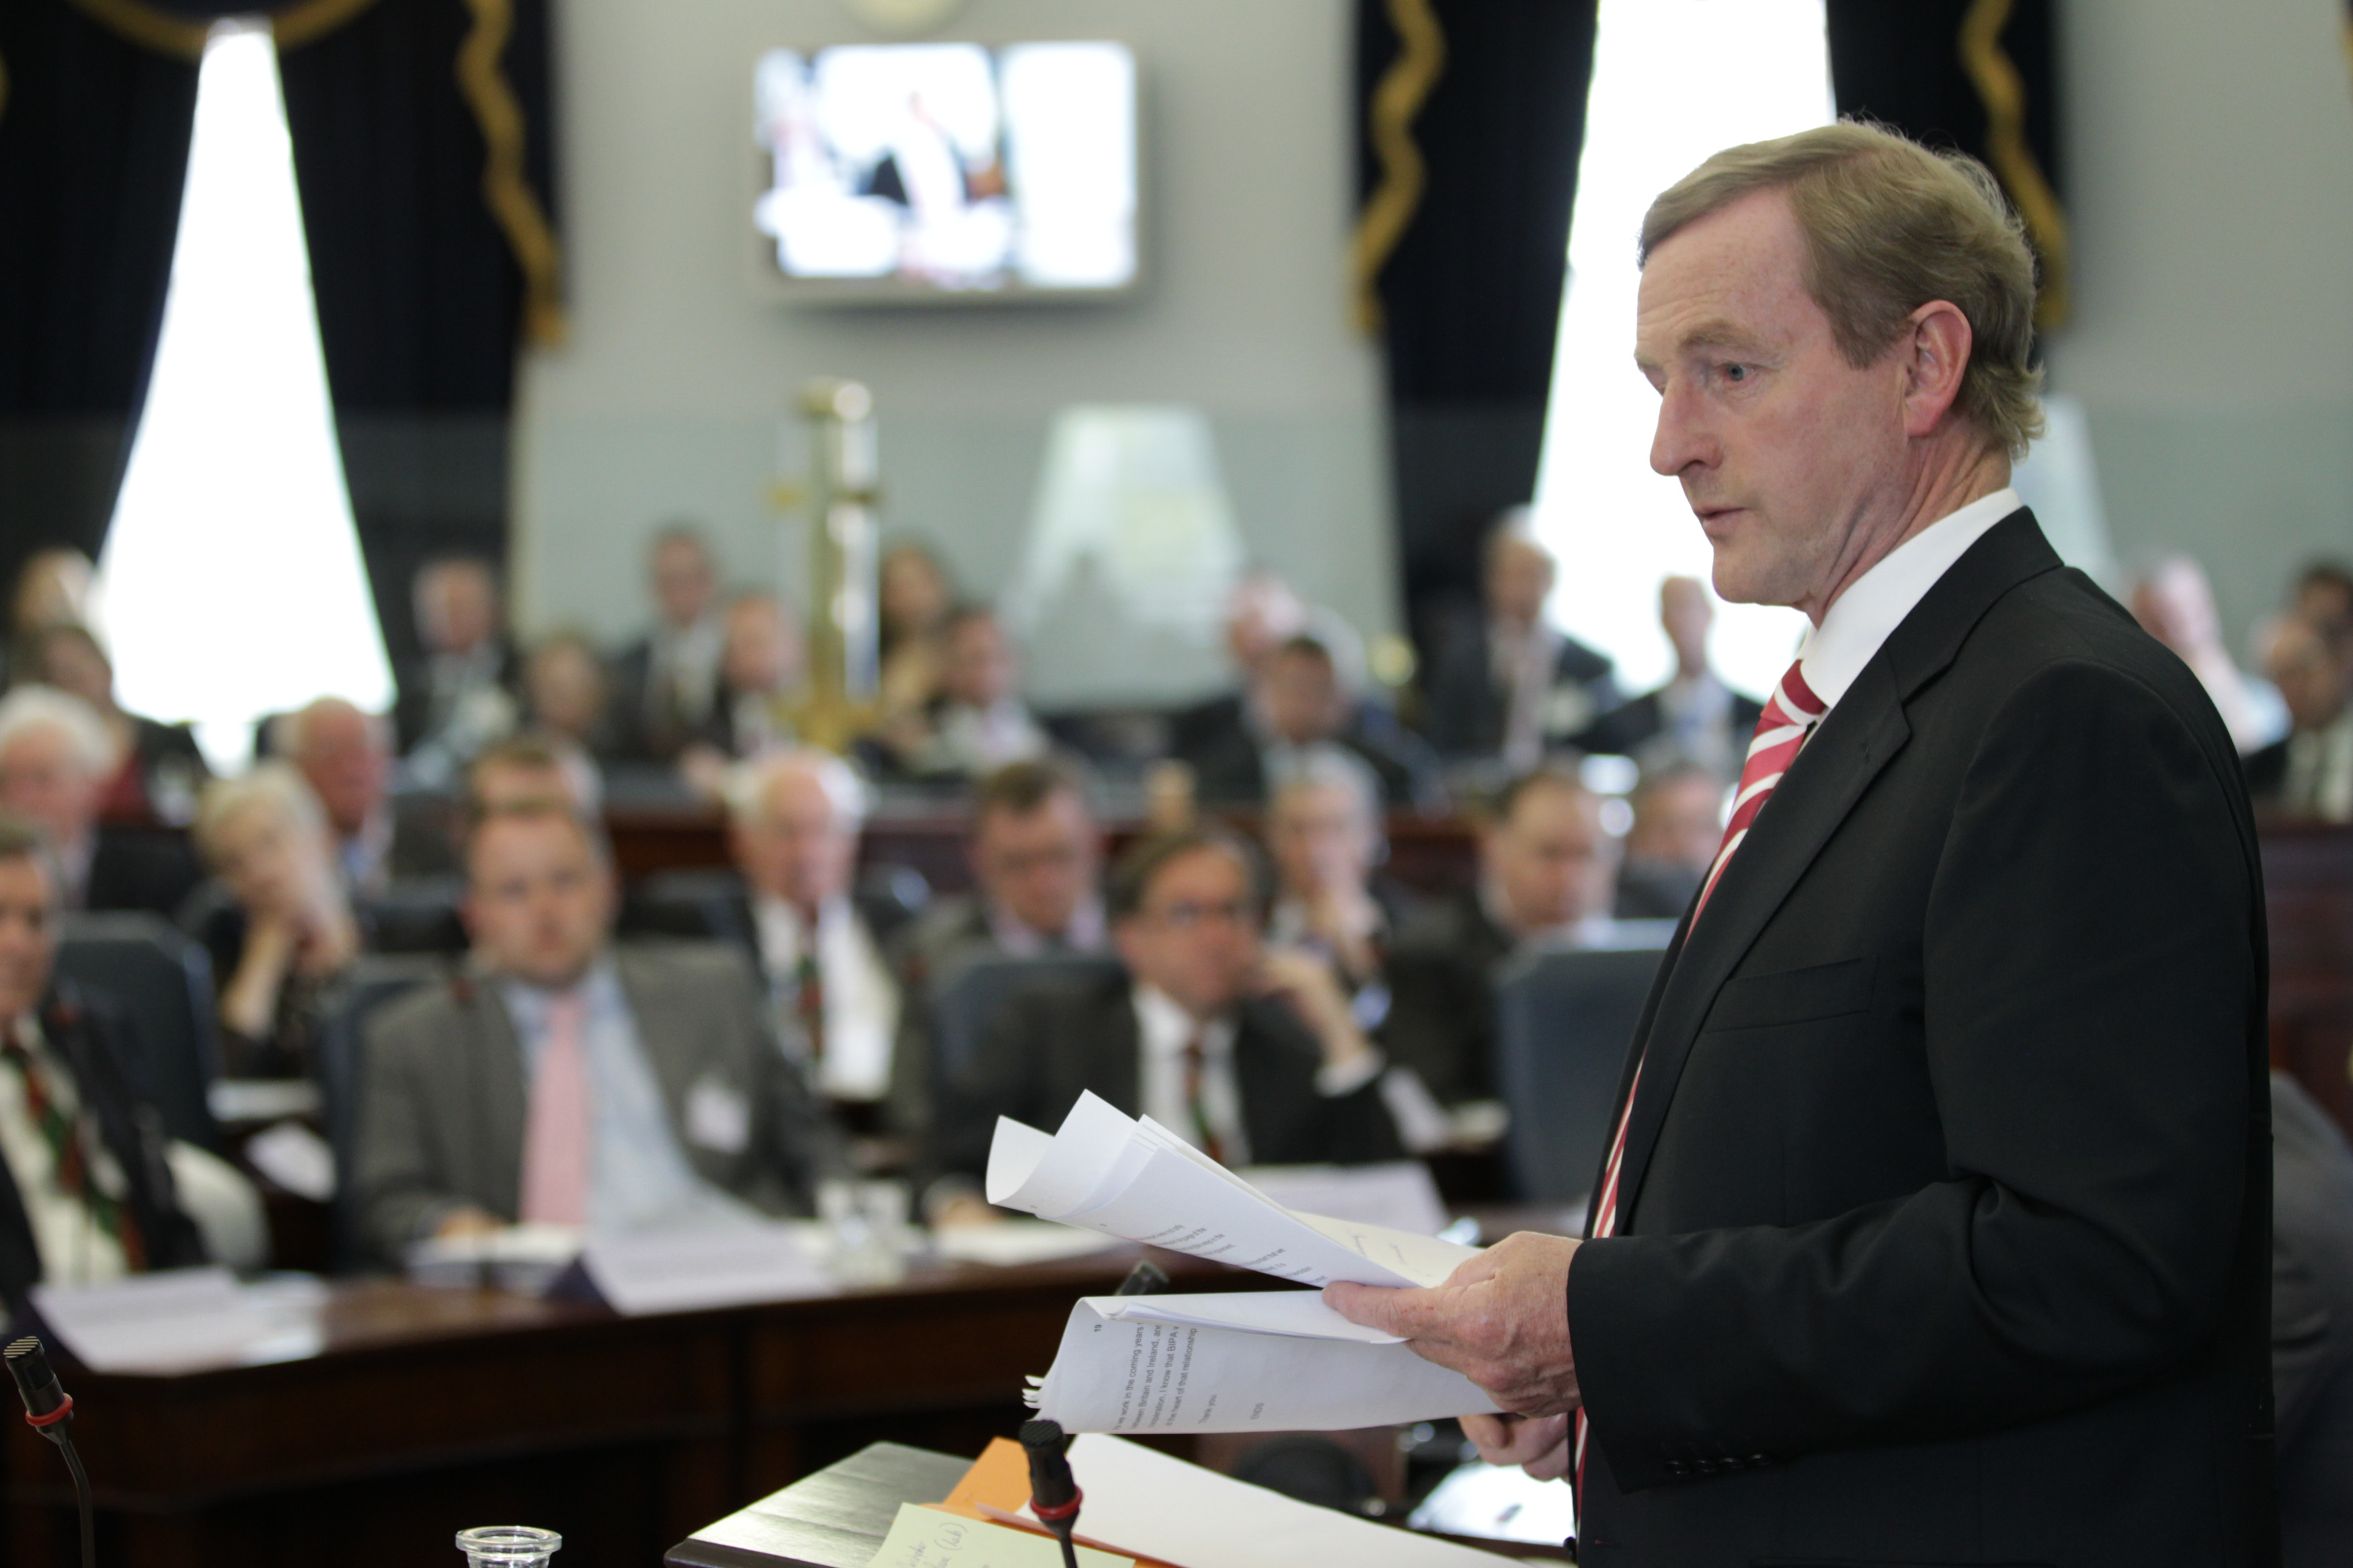 An Taoiseach, Enda Kenny TD, addresses the 44th plenary in the Seanad Chamber, Leinster House